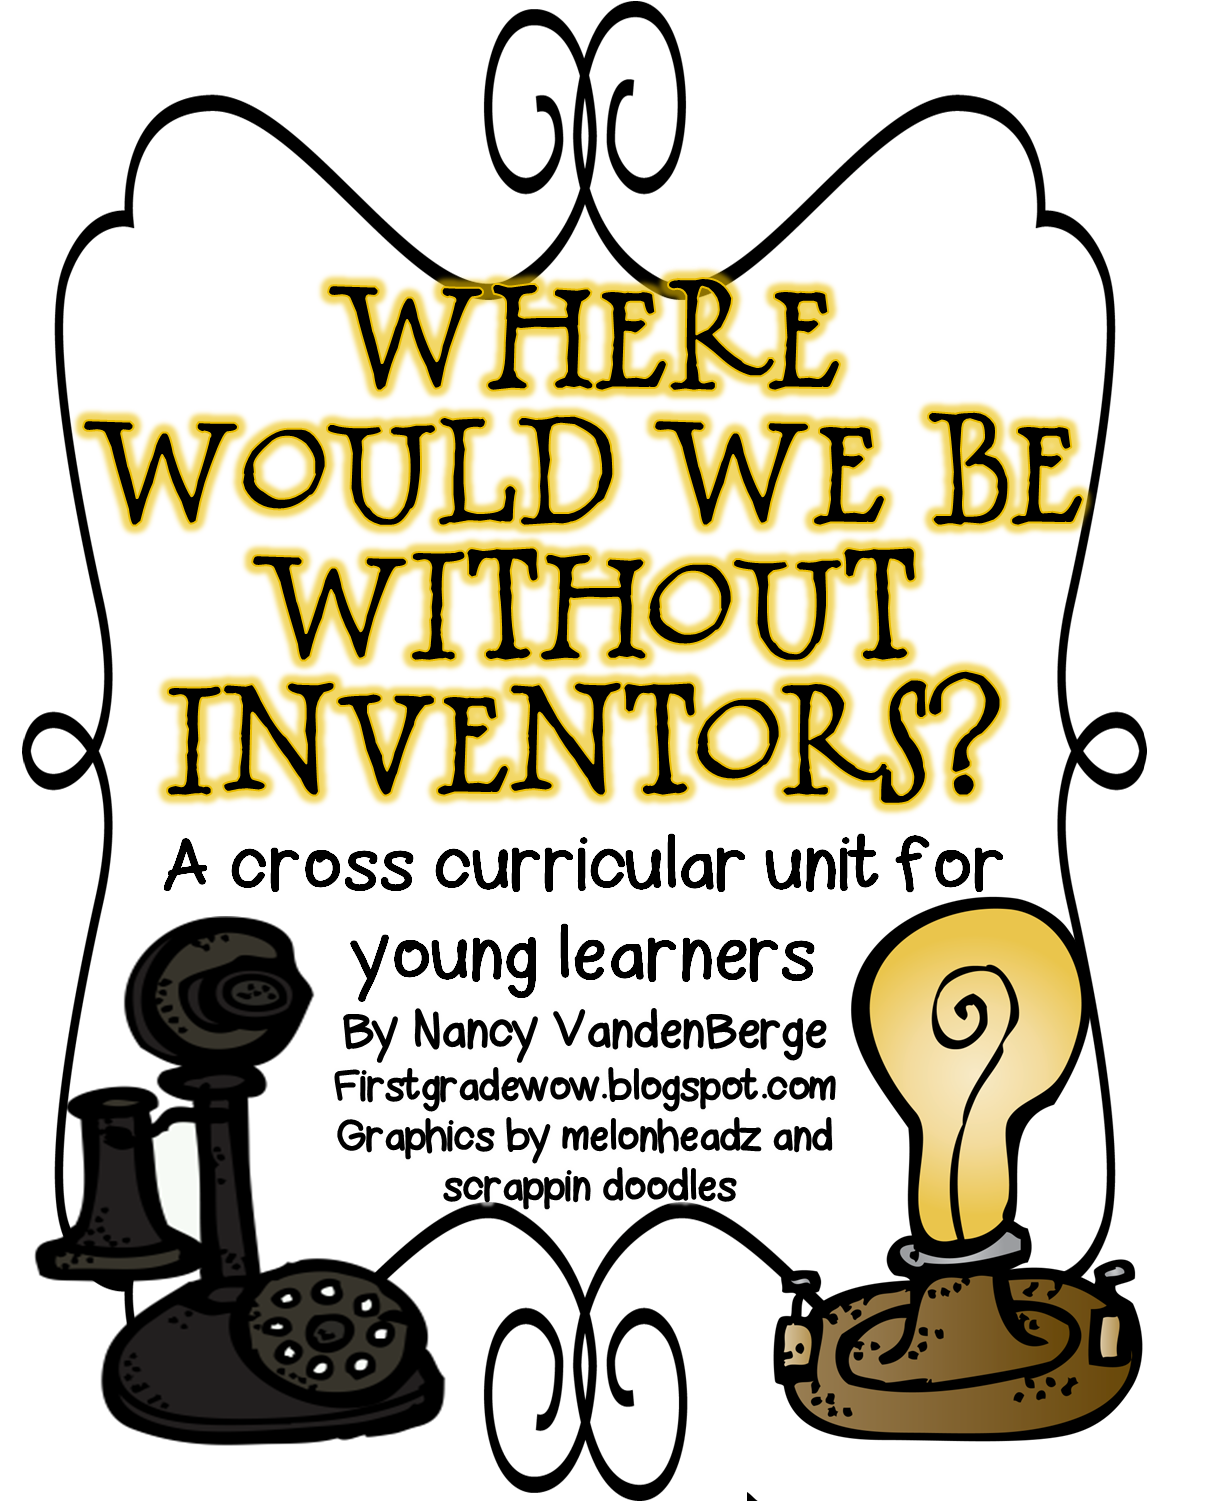 Historical Figures Mlk And Inventors